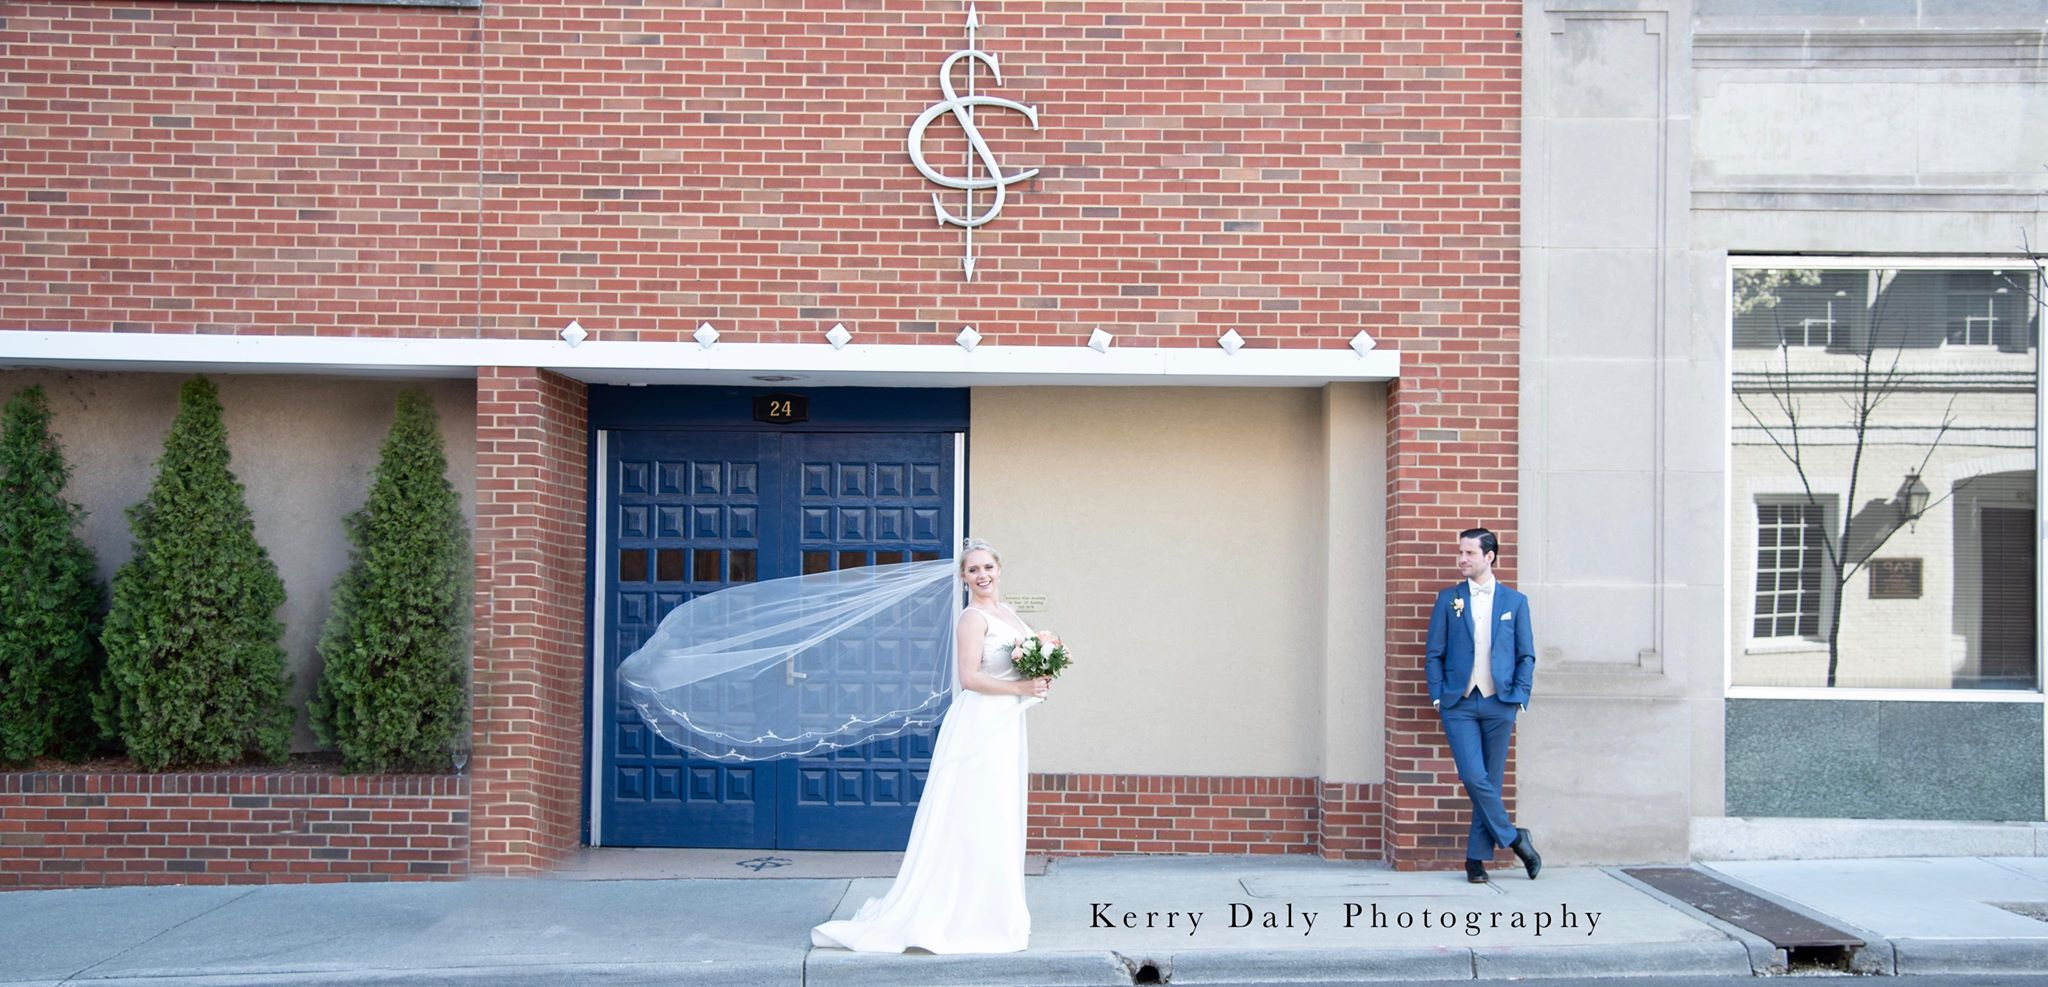 Kerry Daly Photography